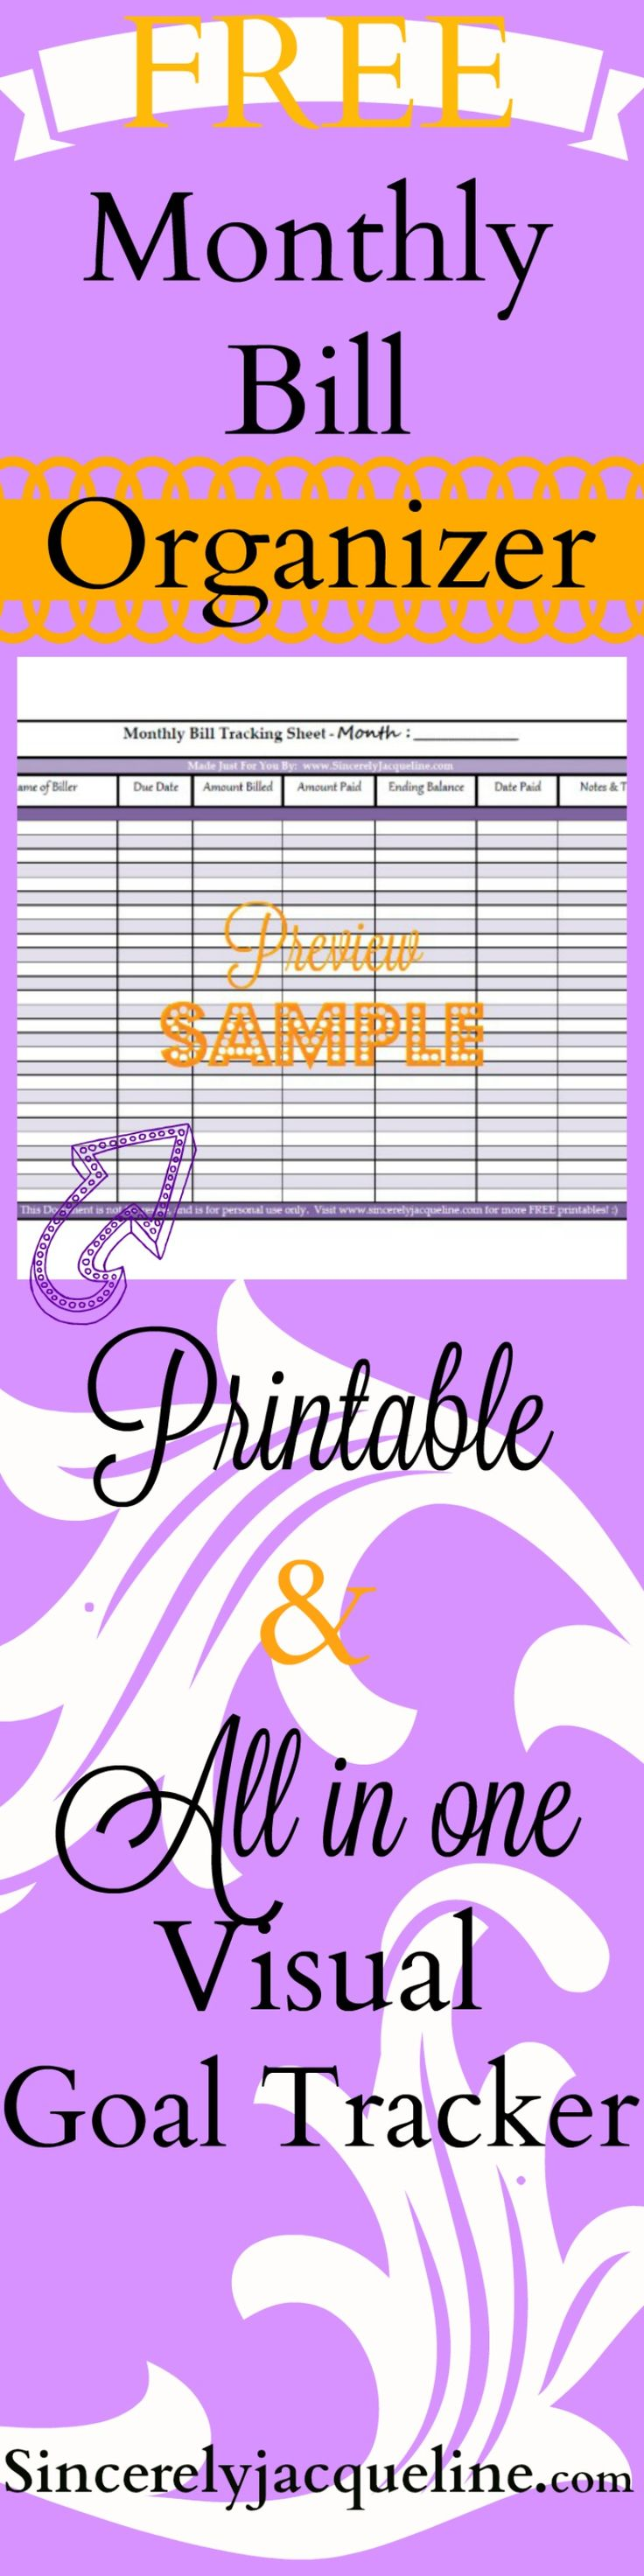 FREE printable- Monthly Bill Organizer printable spreadsheet. Tracks 7 critical pieces of data to keep your money and finances organized.  You will be learning how to save money by being able to see everything all in one place!  Doubles as a visual goal tracker.  Built in money budgeting format. Want to know how to budget money?  Want to be organized? Want to pay off your debt? Then you NEED this FREE  printable.  Try it, you have nothing to lose, and SO MUCH to GAIN. :)